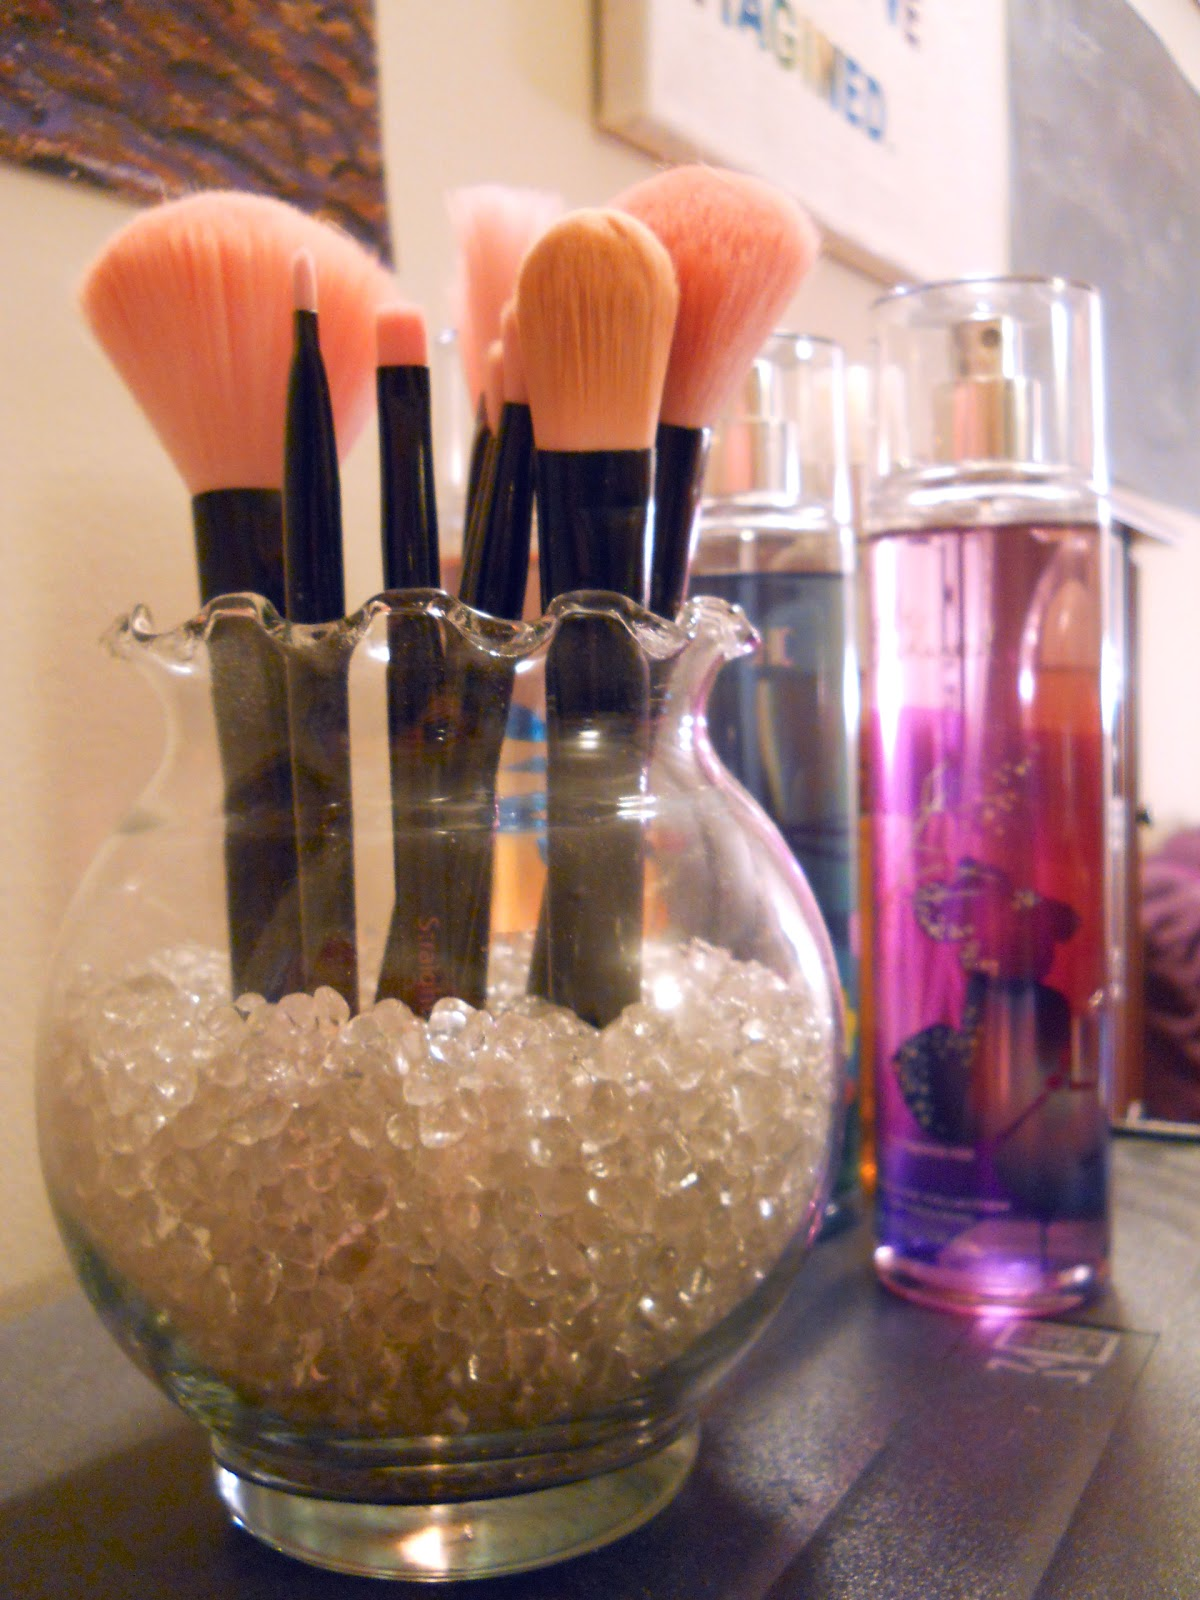 brush holder beads. sephora inspired makeup brush holder beads b